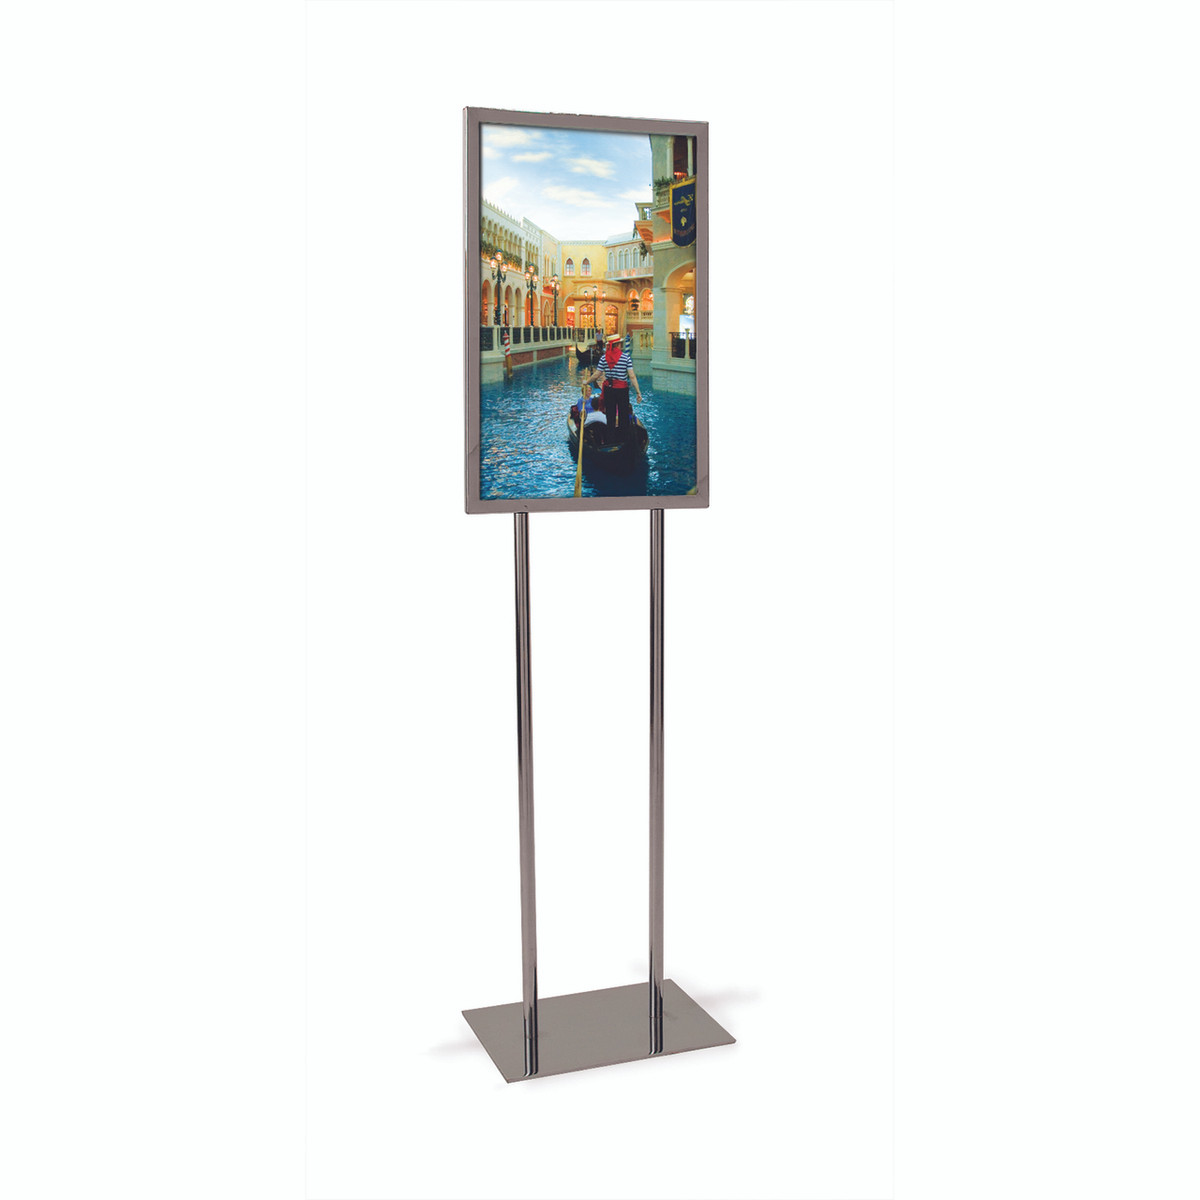 Bulletin Sign Holders   Poster Stand   Product Display Solutions